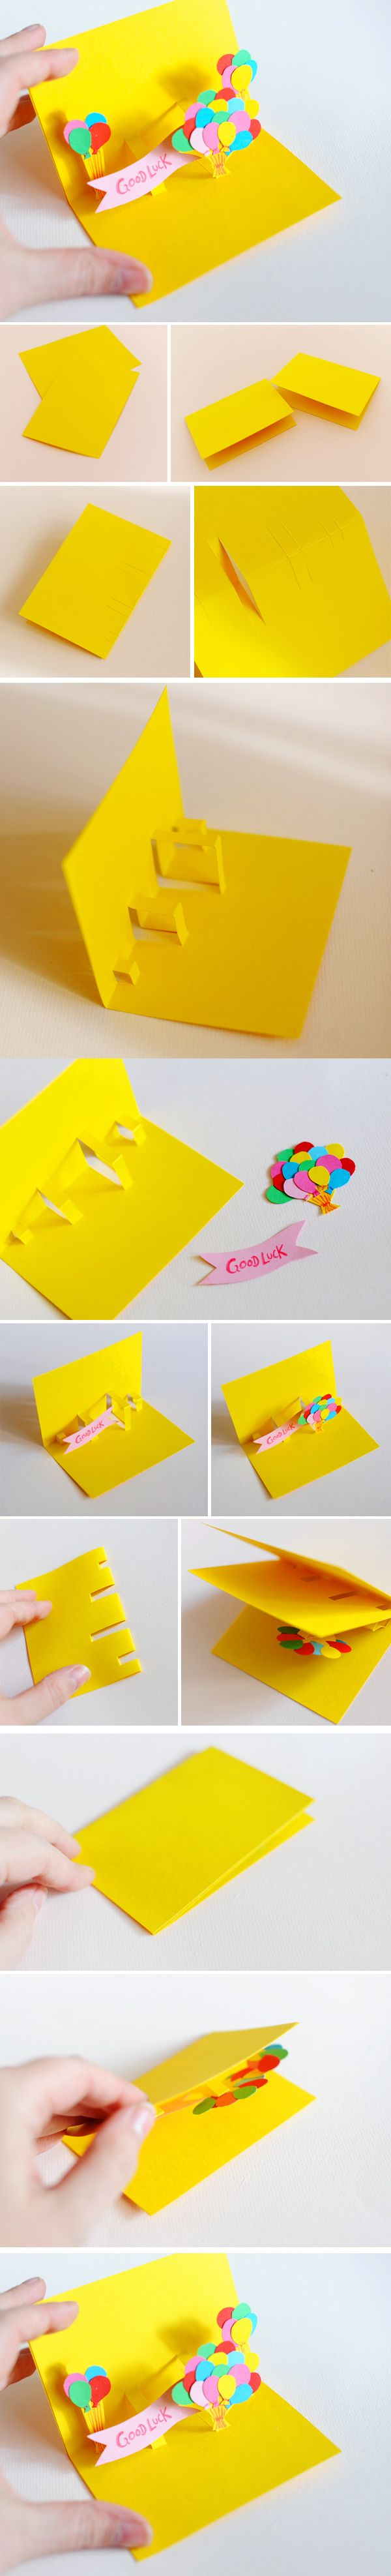 5 DIY Happy Birthday Cards Ideas DIY Creative Ideas